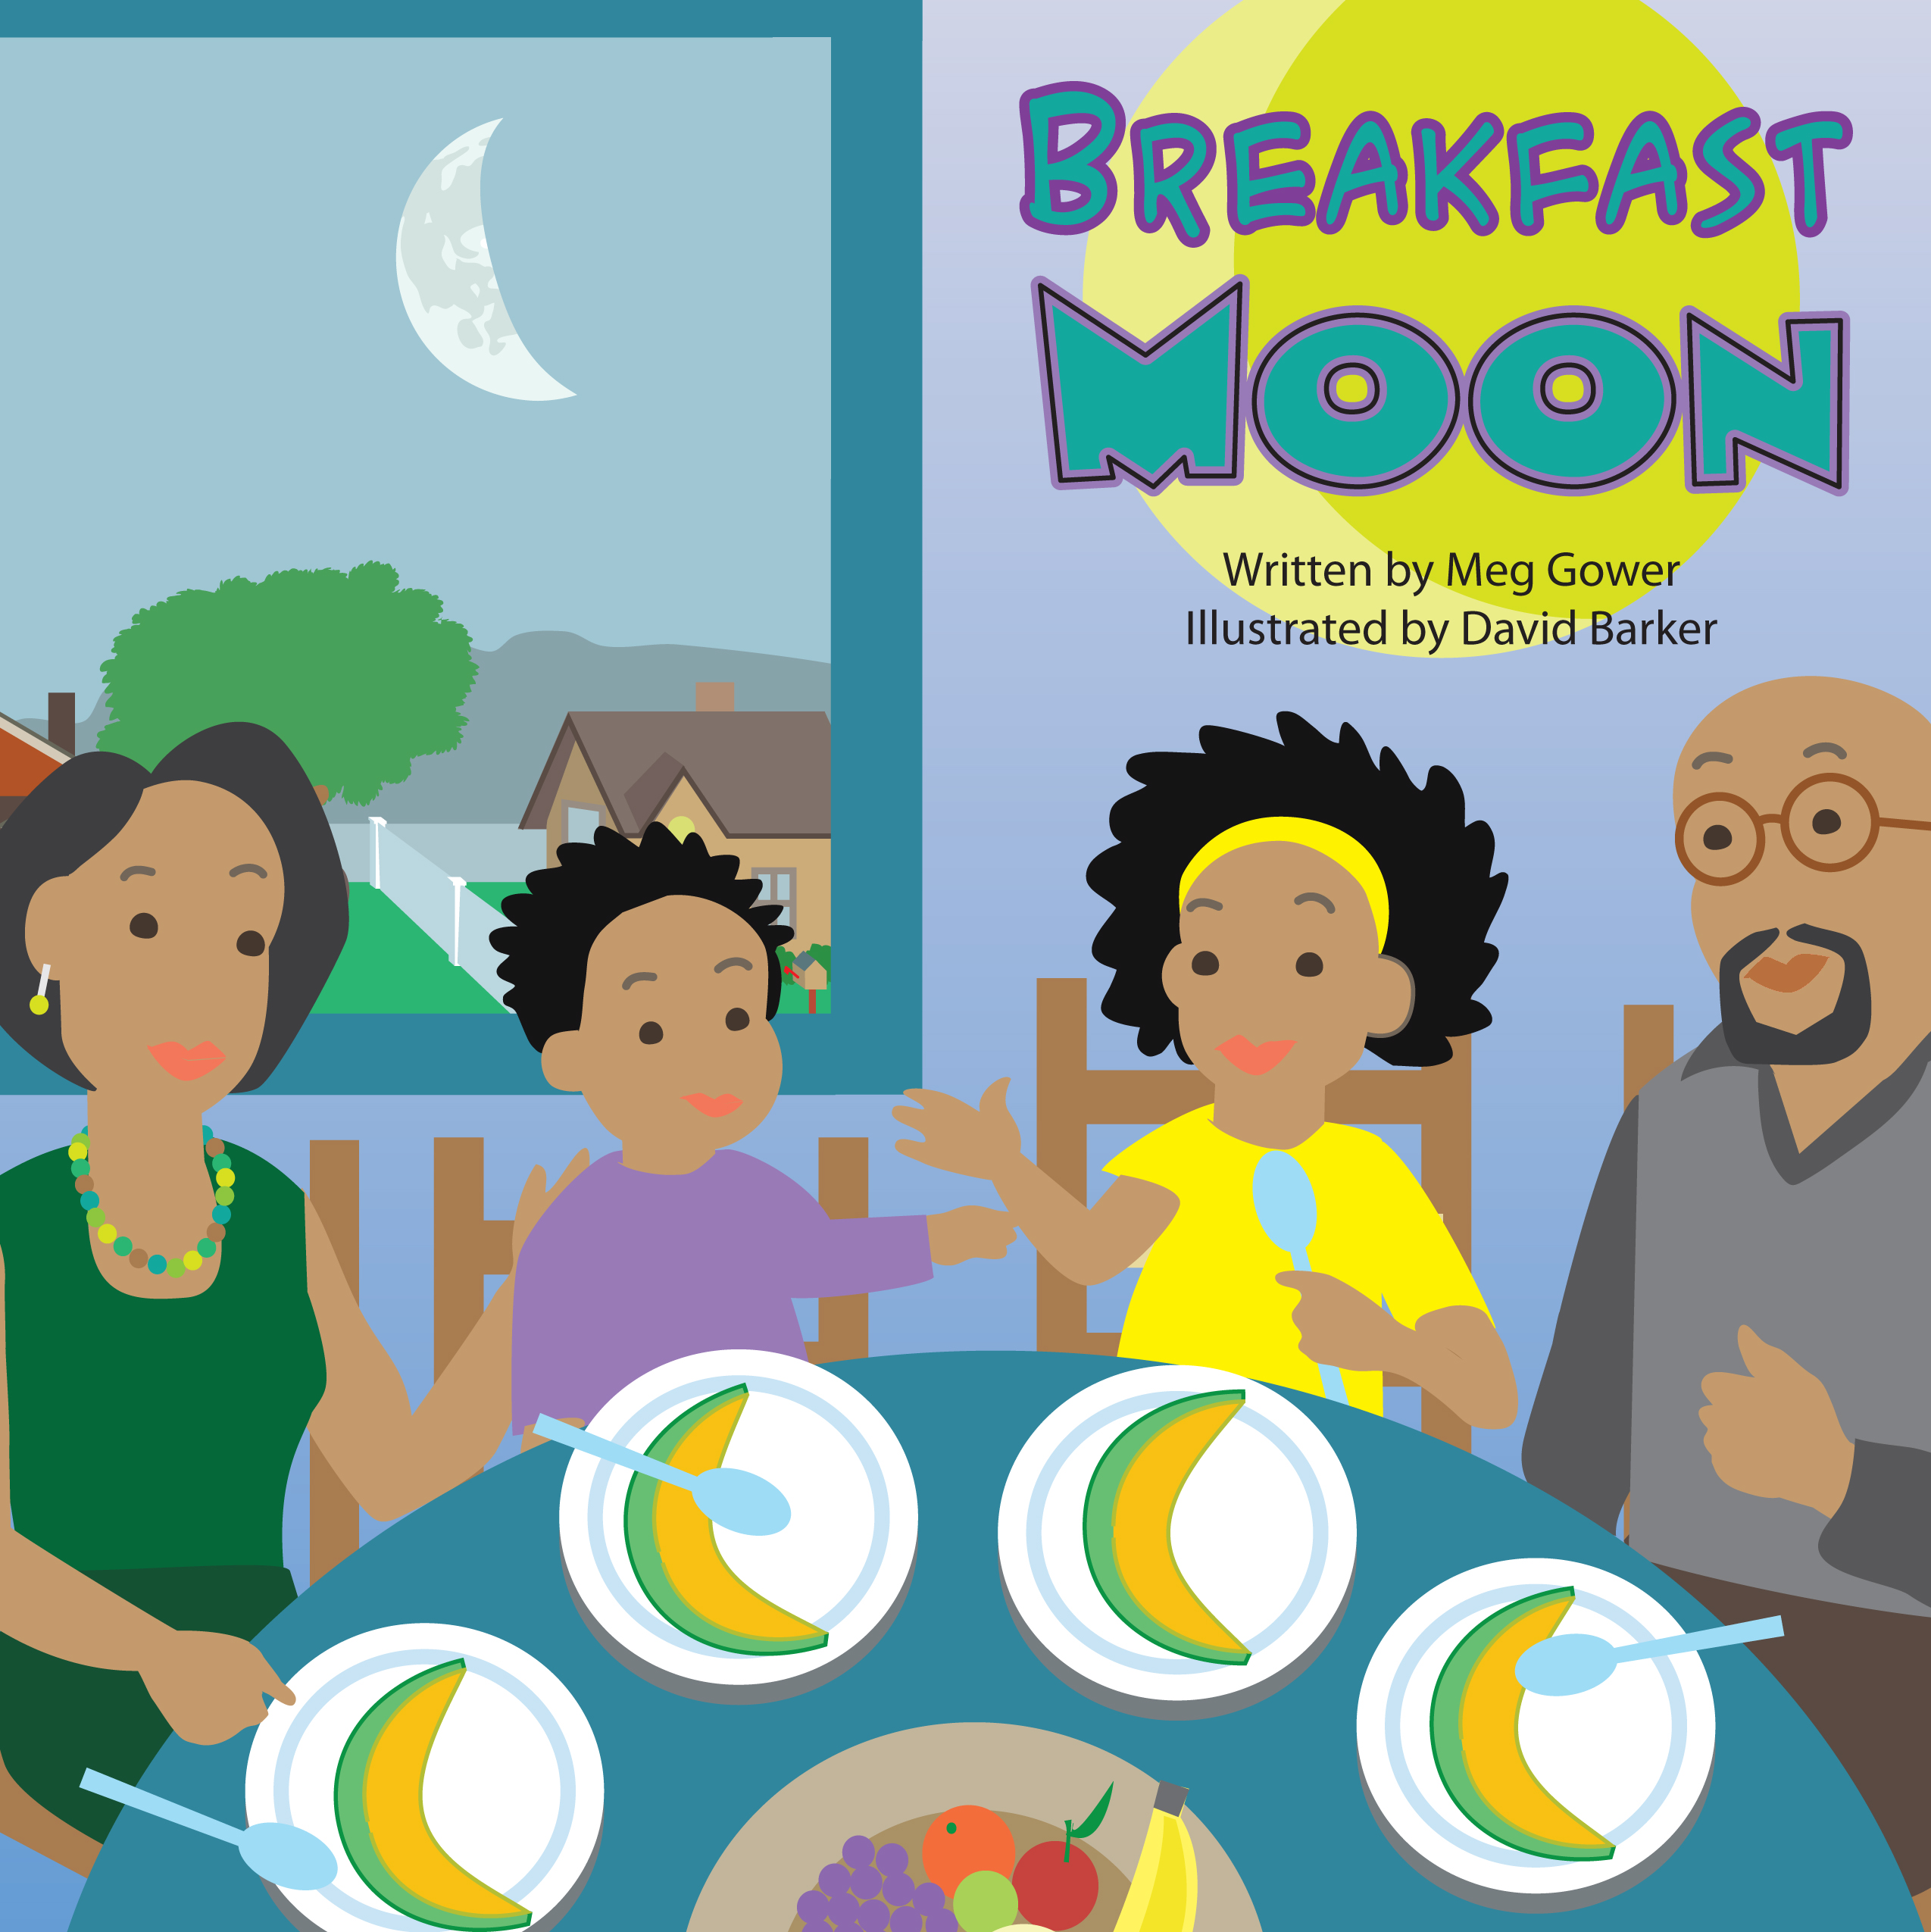 The ASP introduces the first storybook of its kind for engaging young budding astronomers!